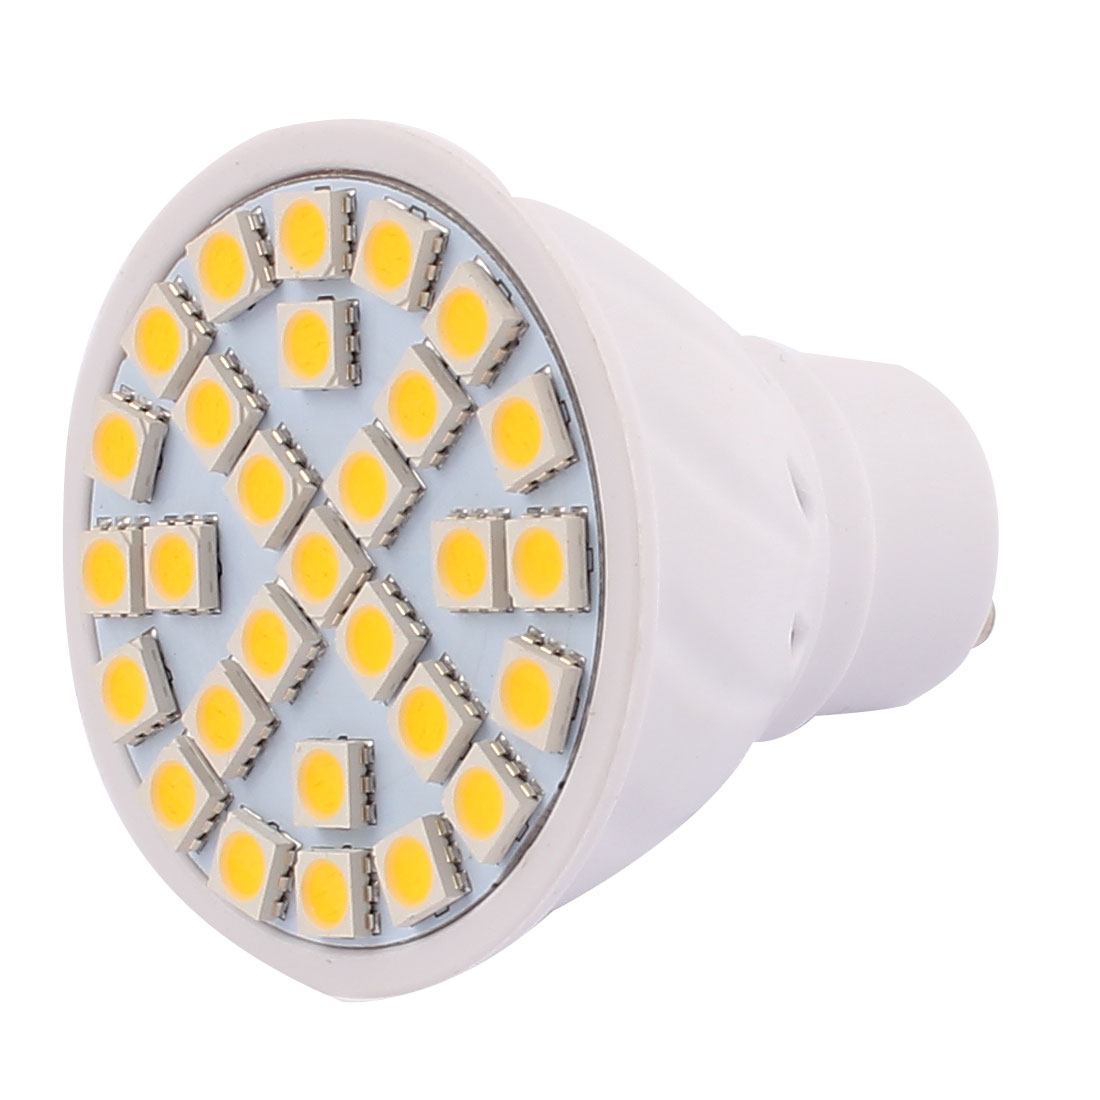 220V GU10 LED Light 5W 5050 SMD 29 LEDs Spotlight Down Lamp Bulb Energy Save Warm White